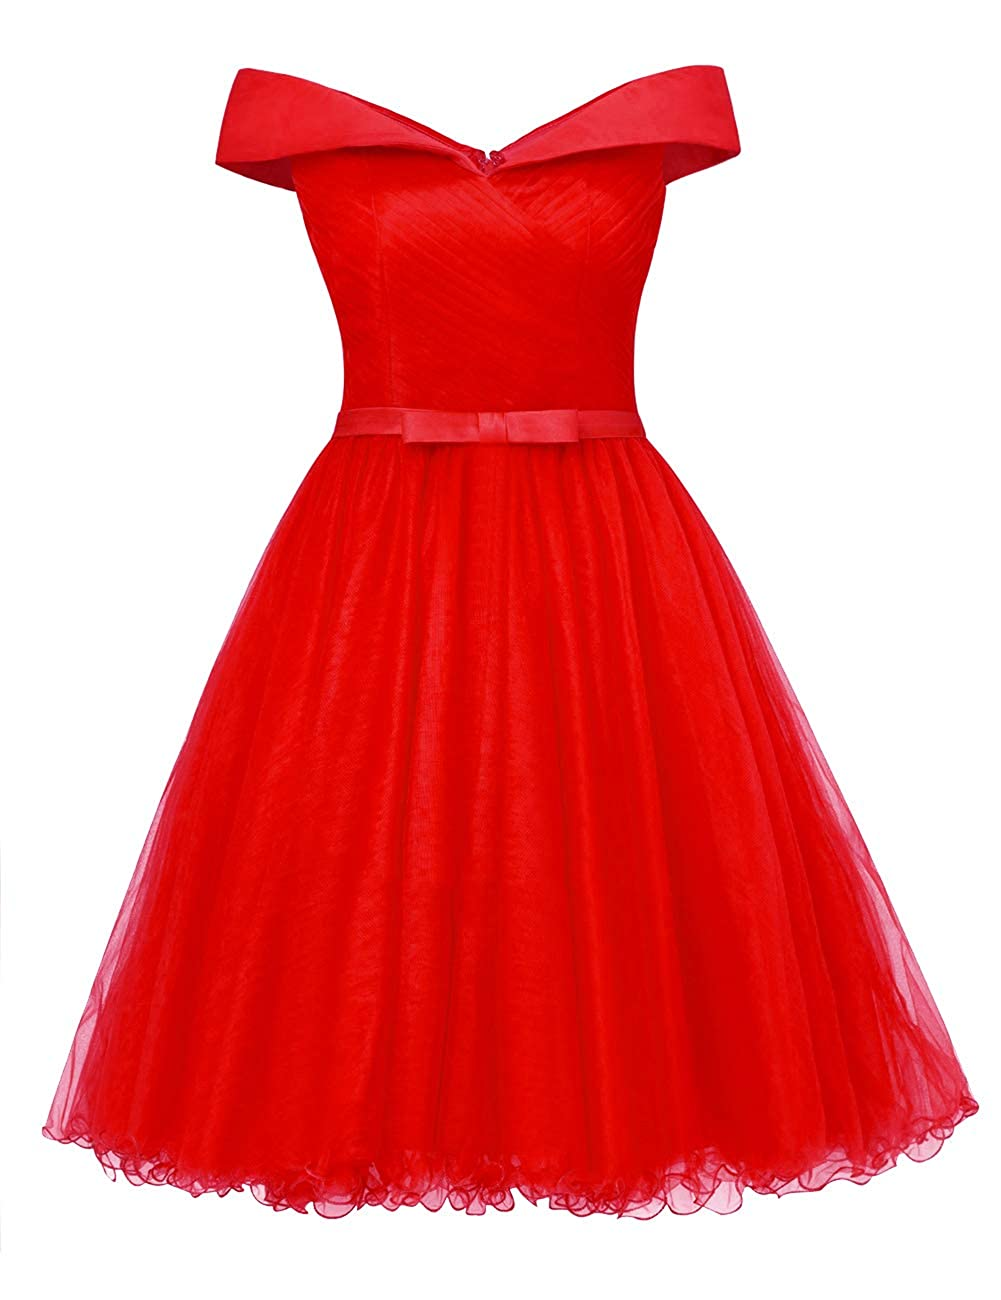 Red Uther Off The Shoulder Prom Homecoming Dresses Knee Length Cocktail Dress Tulle Gown